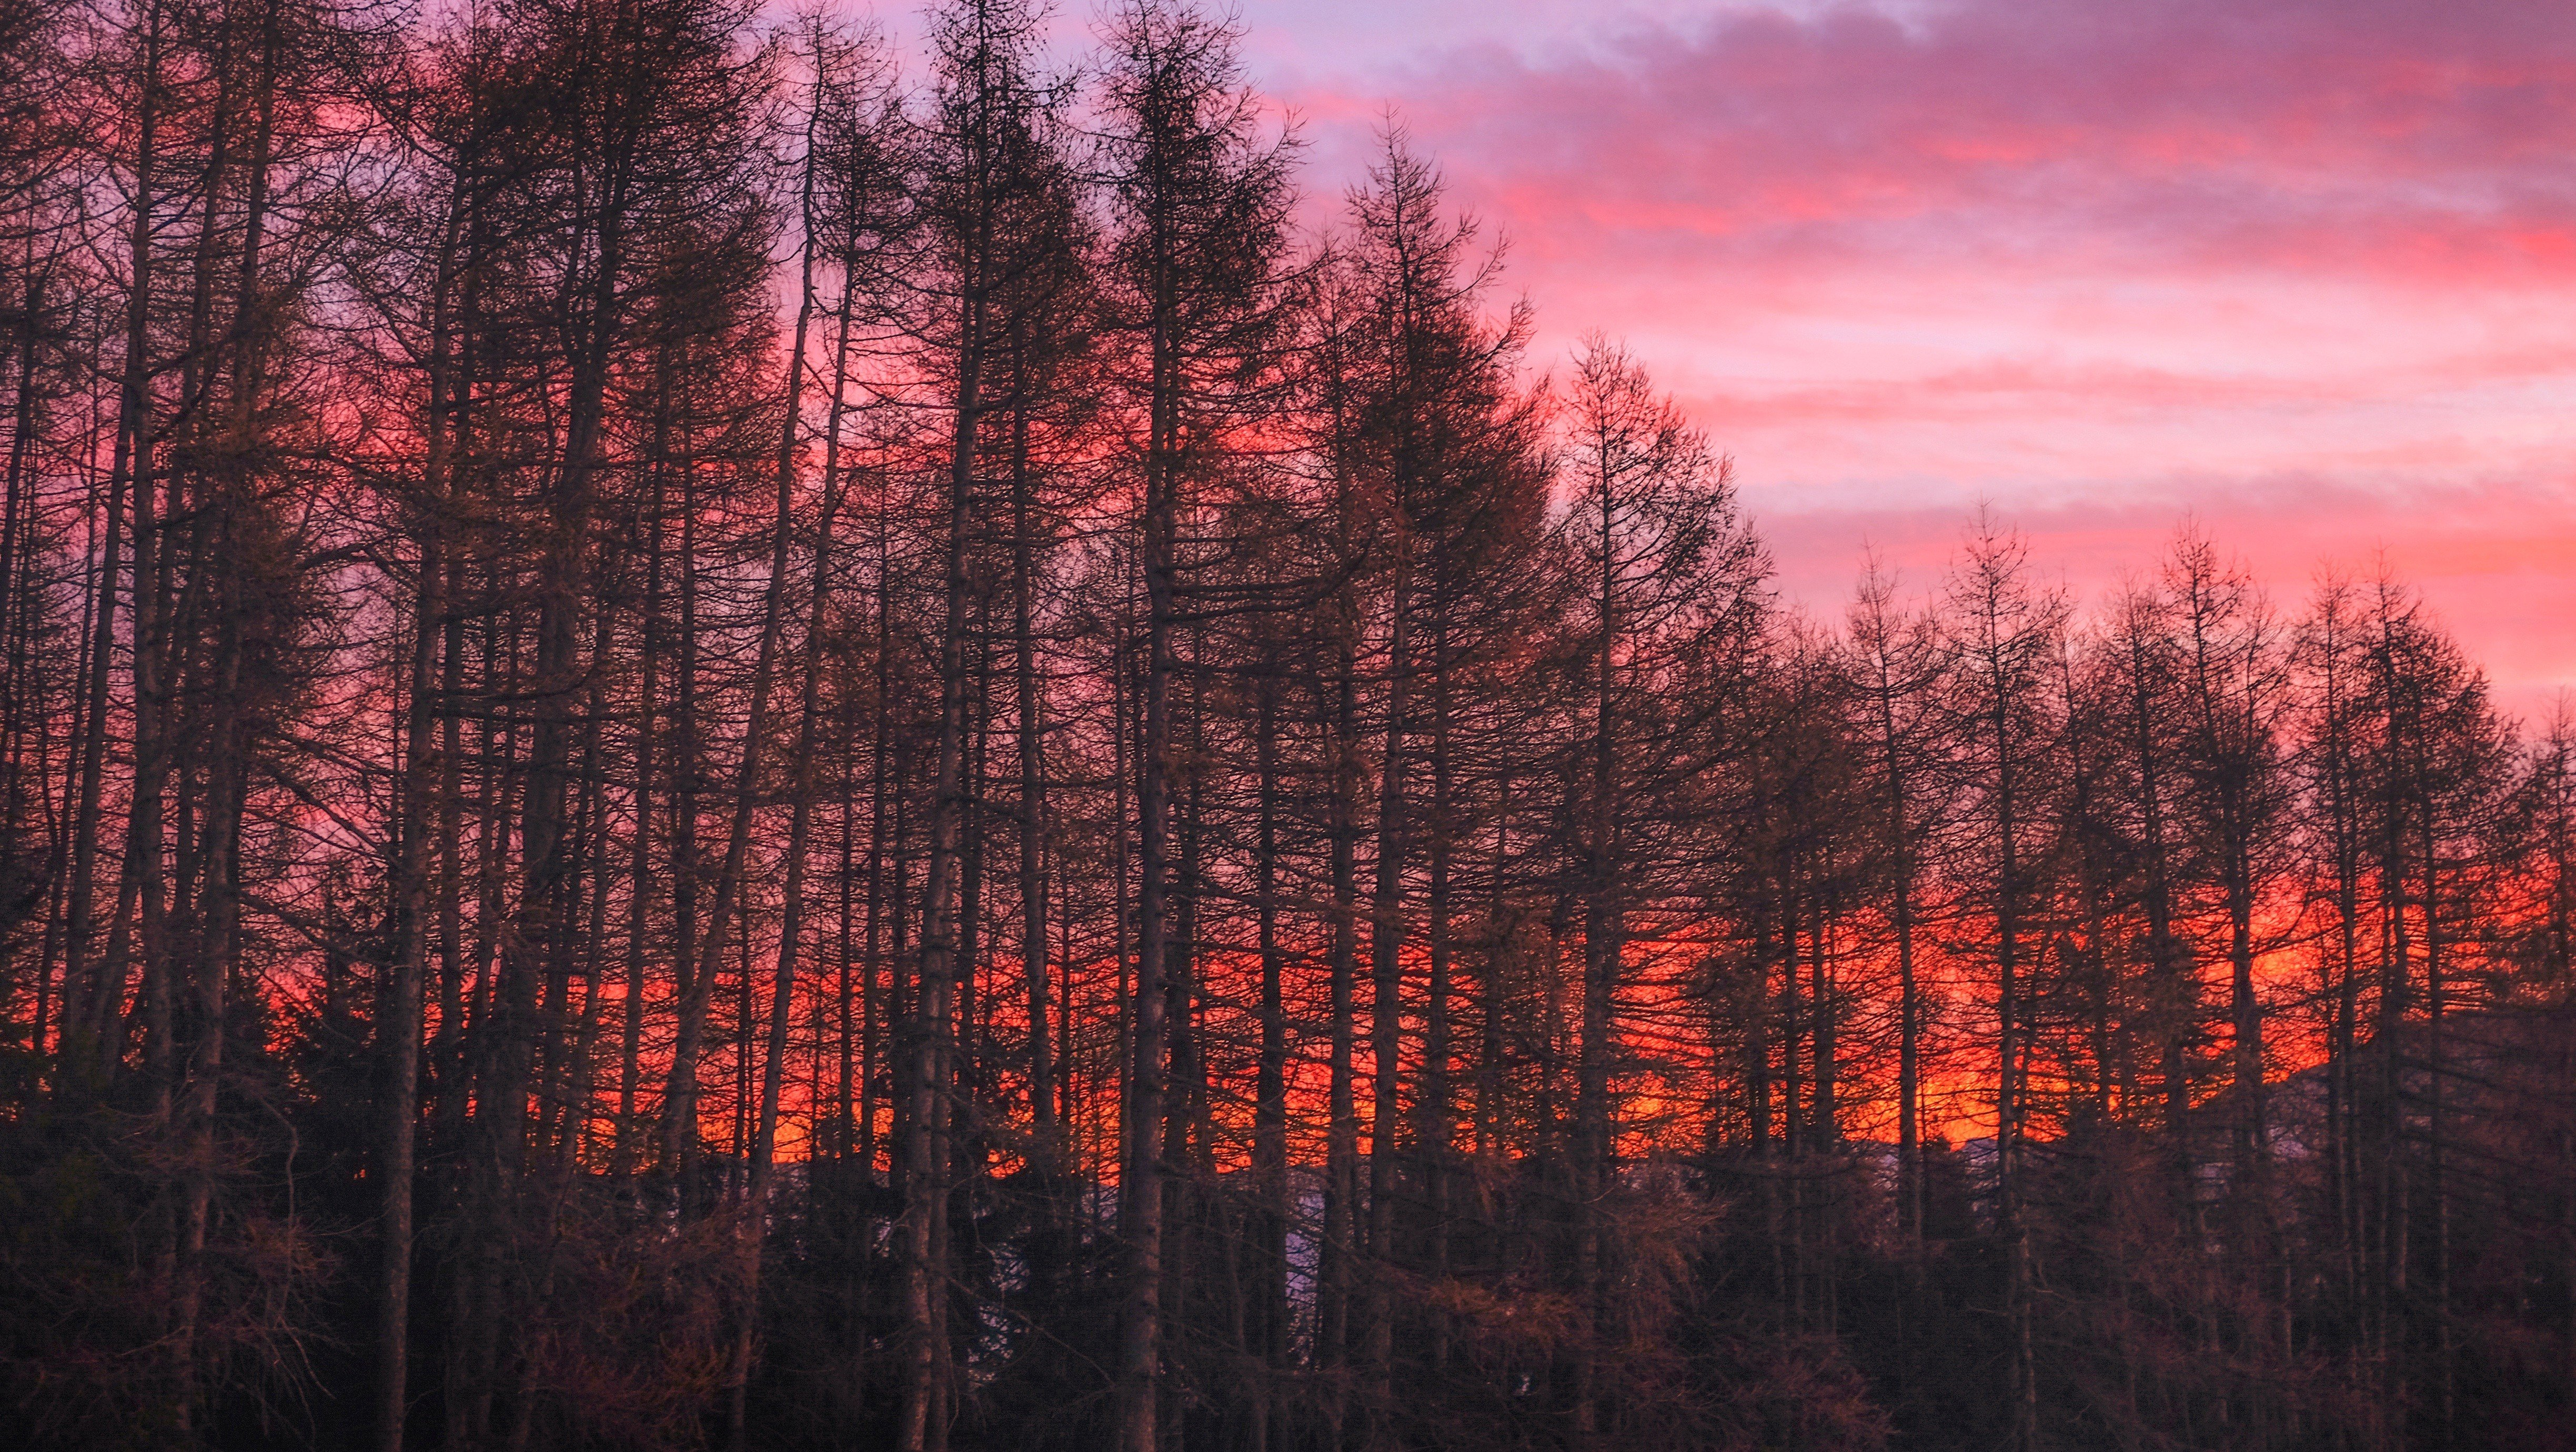 Nature Trees Clouds Hdr Forest Sunset Hd Wallpapers